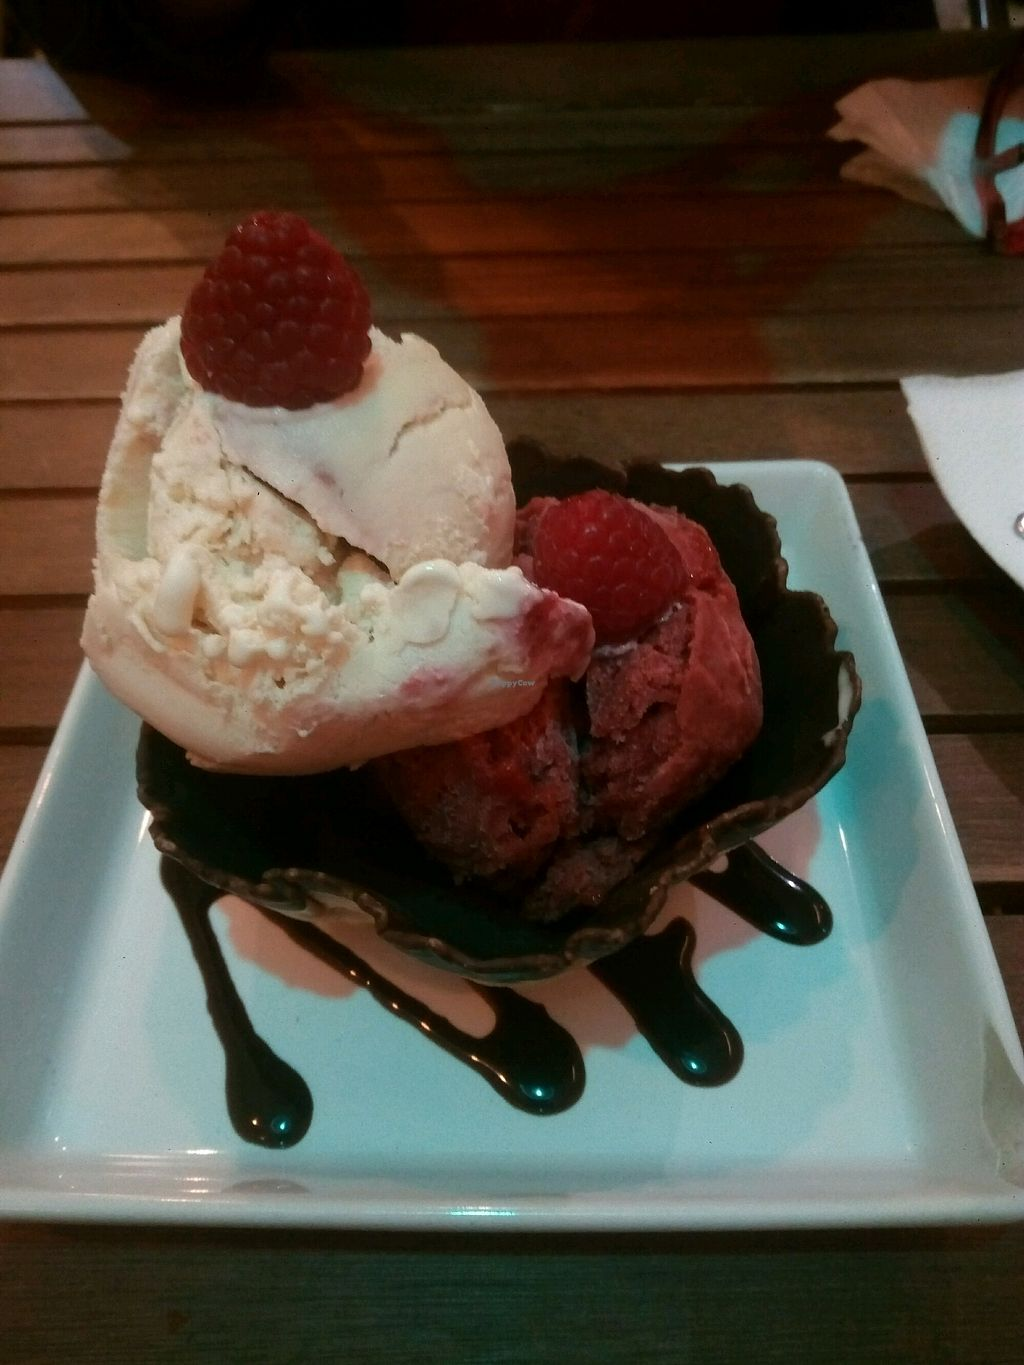 """Photo of Sanissimo - Opera  by <a href=""""/members/profile/Nat99"""">Nat99</a> <br/>vegan ice-cream <br/> April 2, 2018  - <a href='/contact/abuse/image/73747/379992'>Report</a>"""